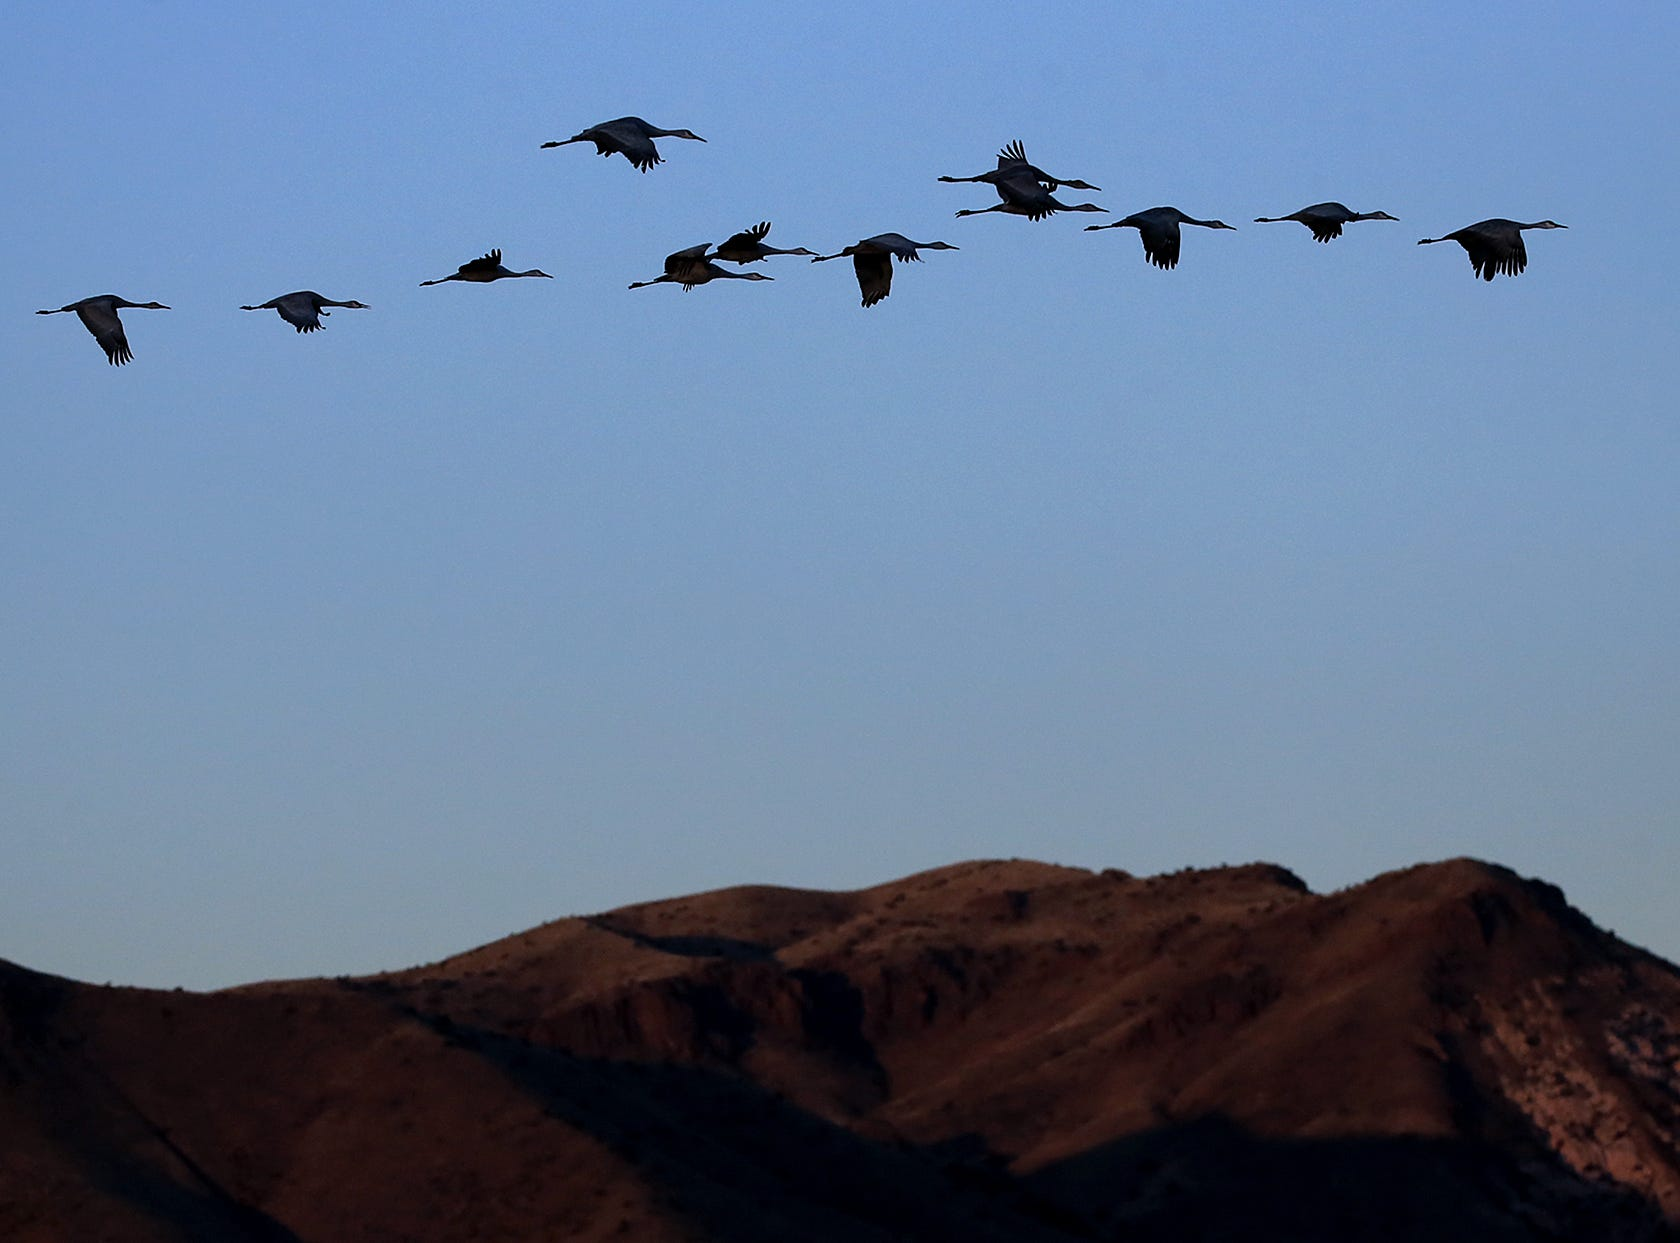 Sandhill Cranes are silhouetted against the Chupadera Mountains as they arrive back at Bosque del Apache National Wildlife Refuge after a long day of hunting food in the Rio Grande valley.